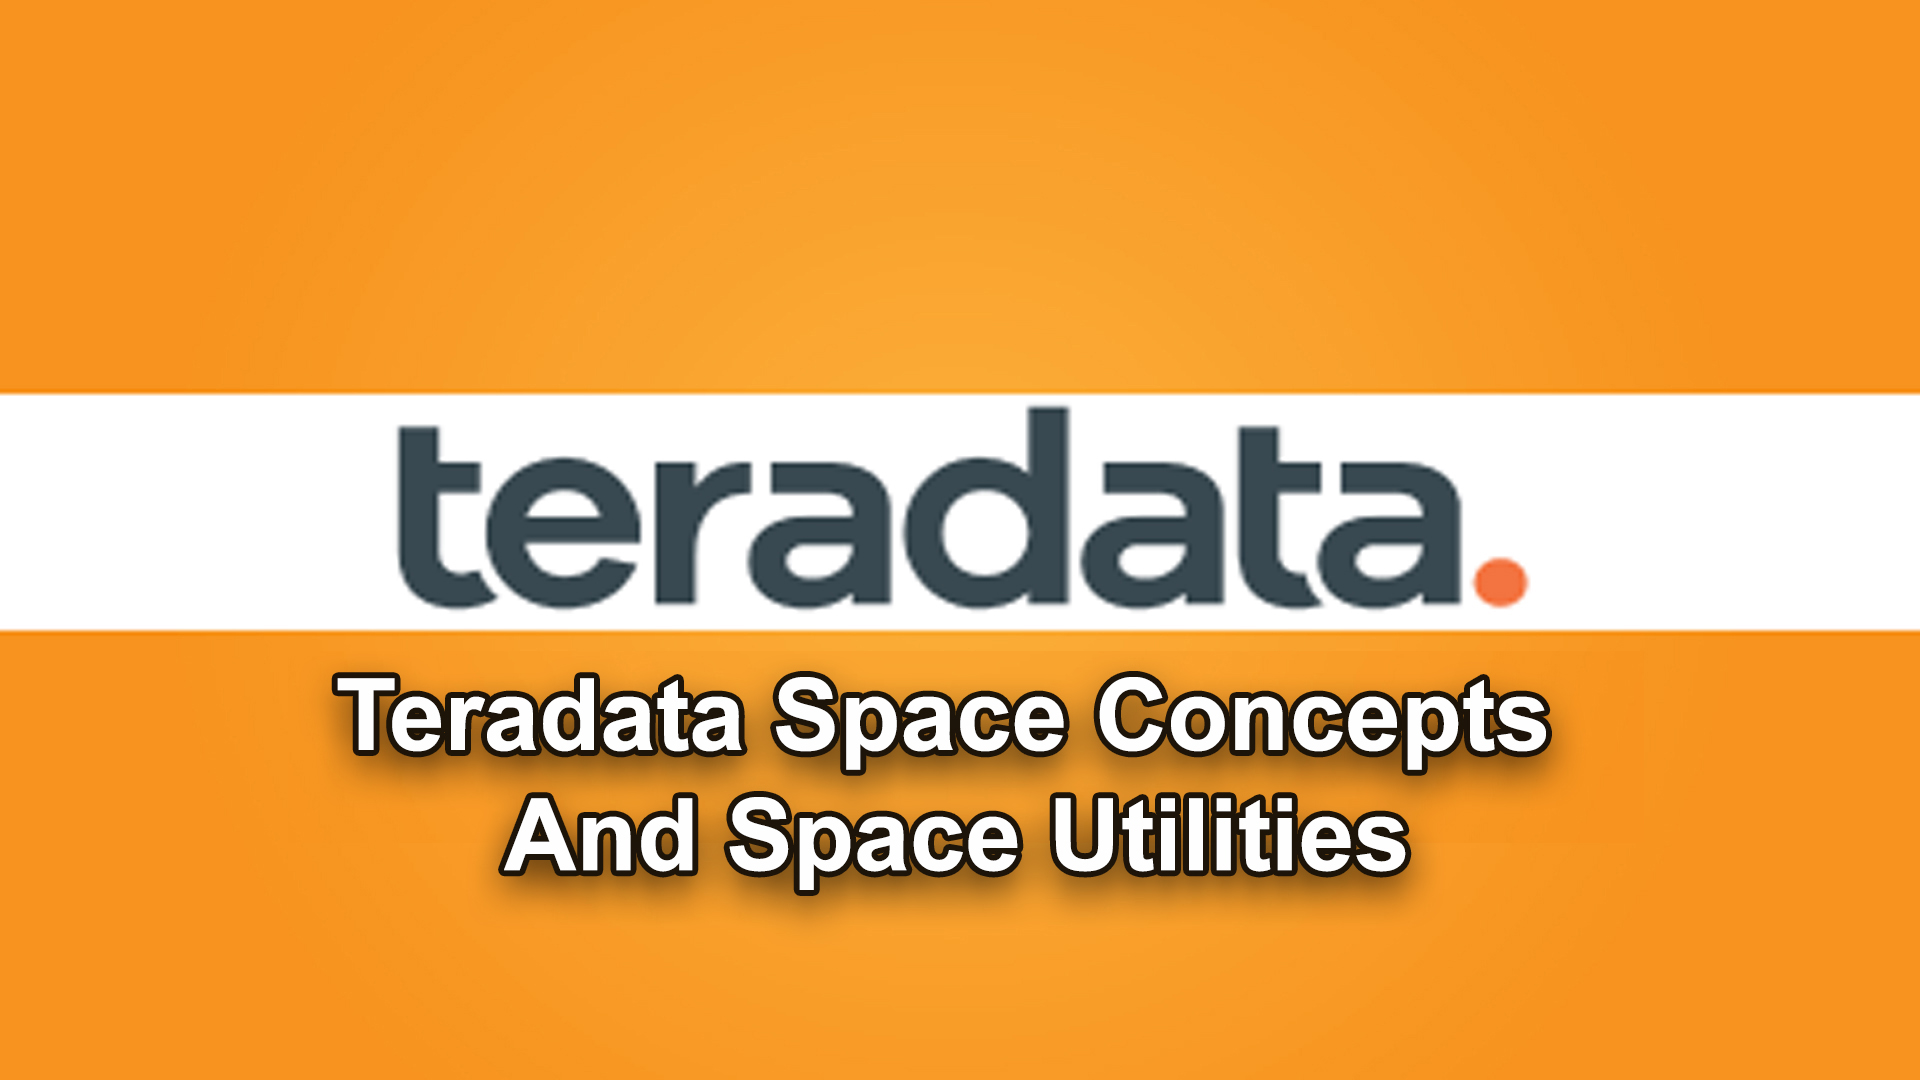 TERADATA SPACE CONCEPTS AND SPACE UTILITIES